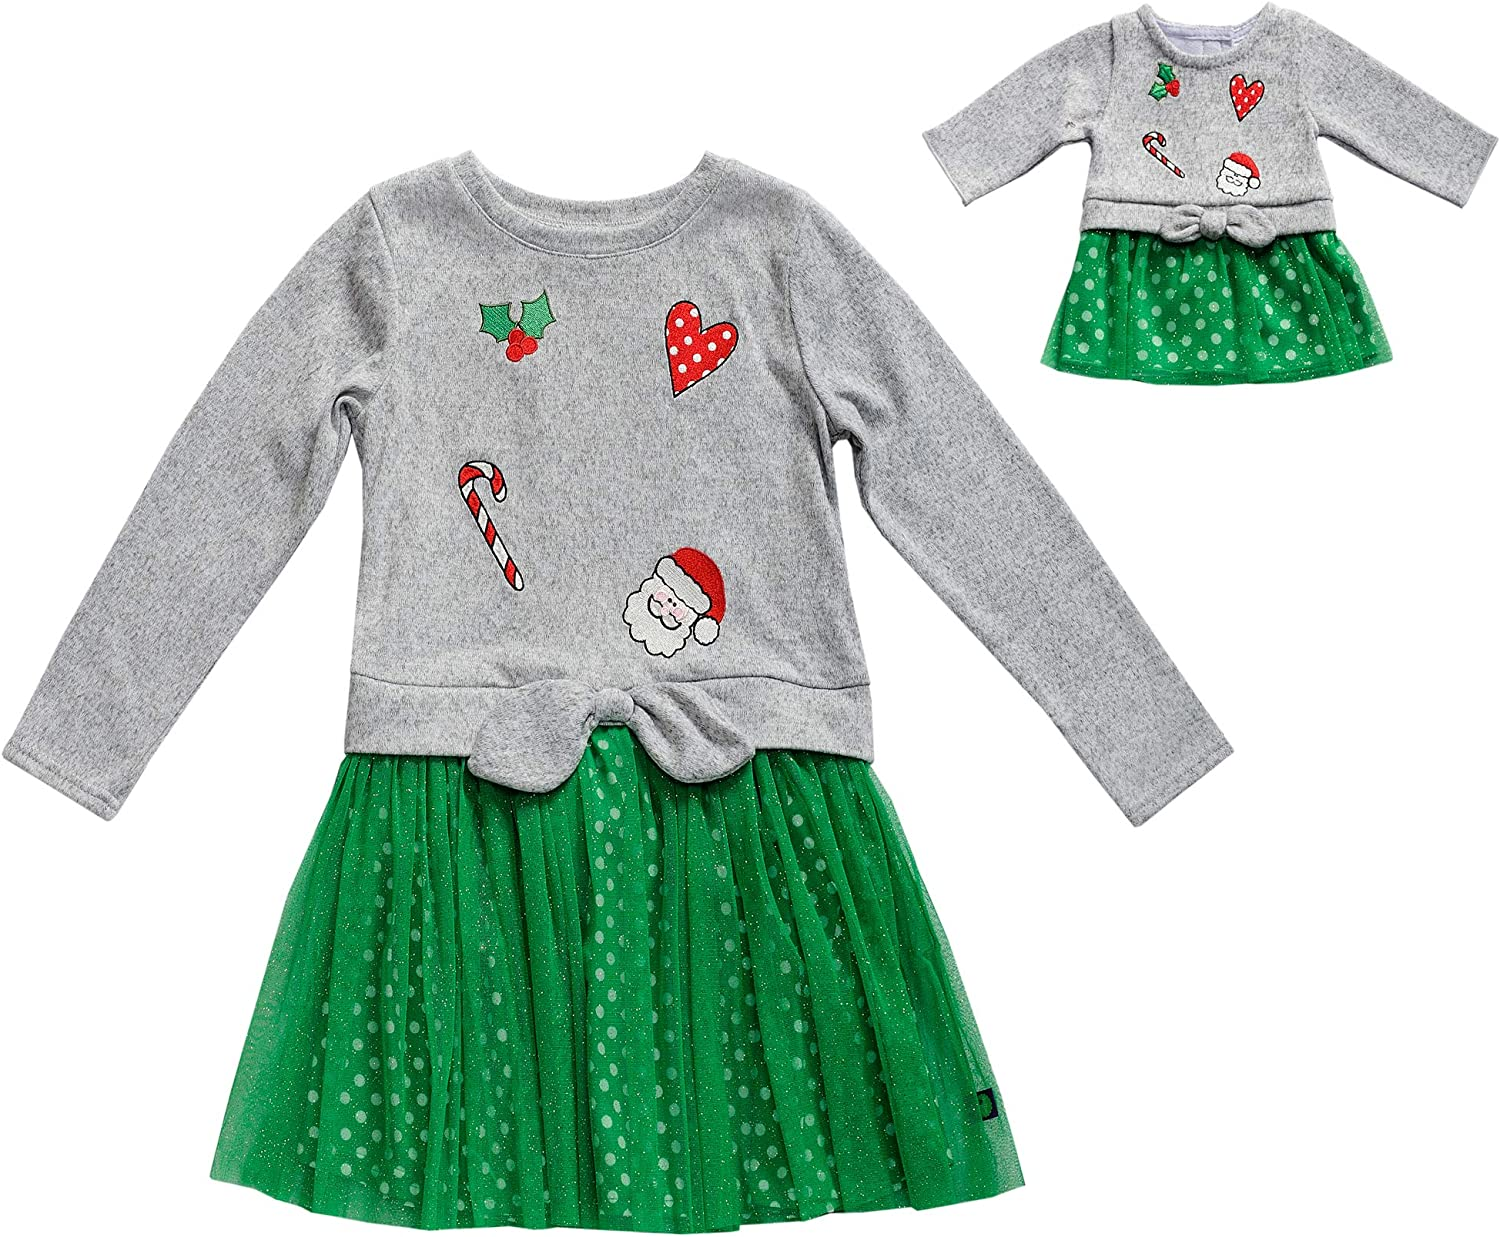 Dollie /& Me Girls Apparel Printed Long Sleeve Pajamas with Matching Doll Outfit